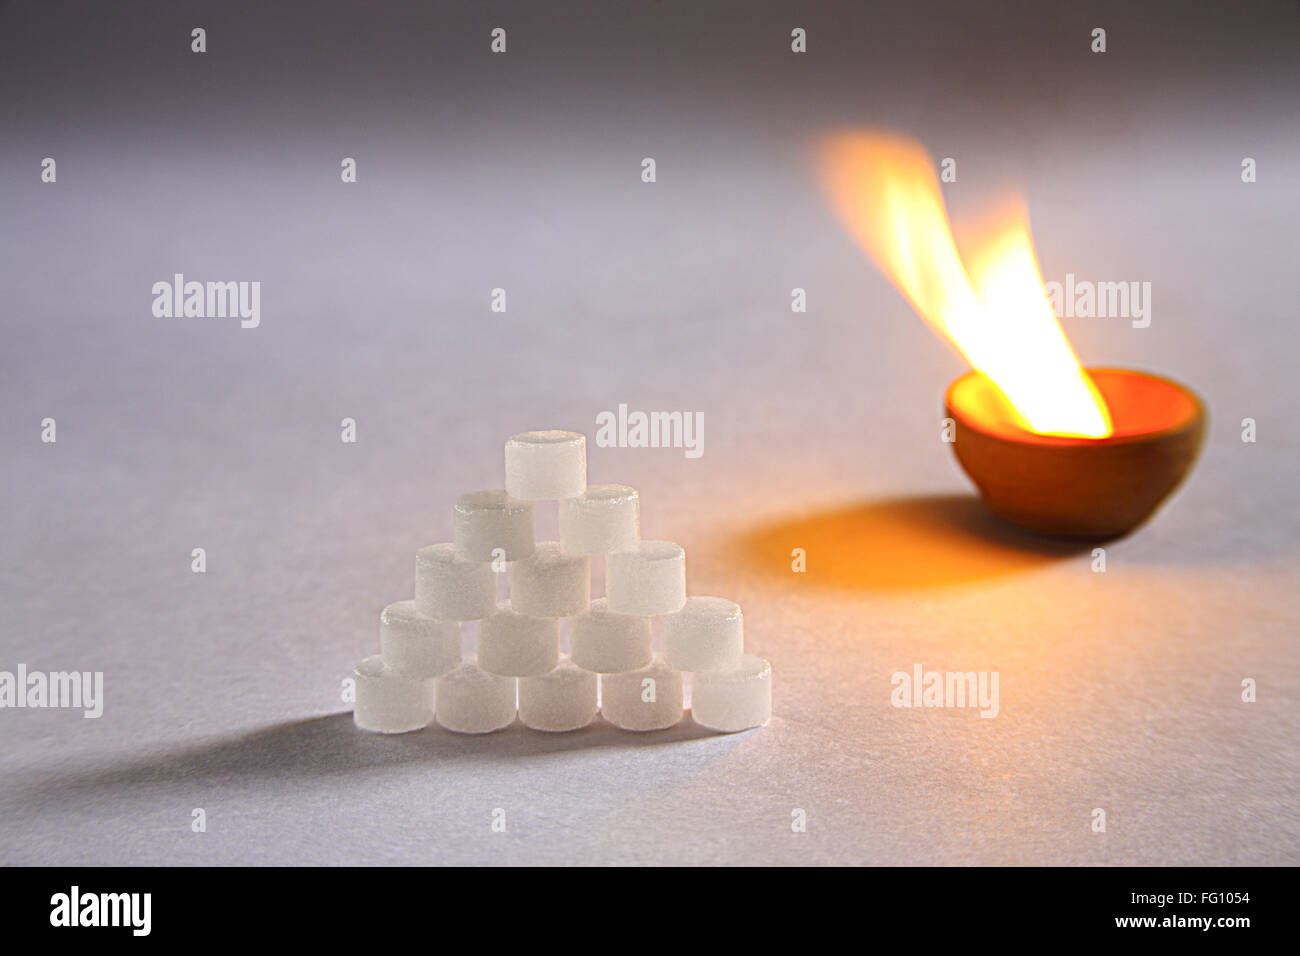 Concept , kapur or camphor camphora officinerum use as ayurvedic medicine with burning in panti on white background Stock Photo